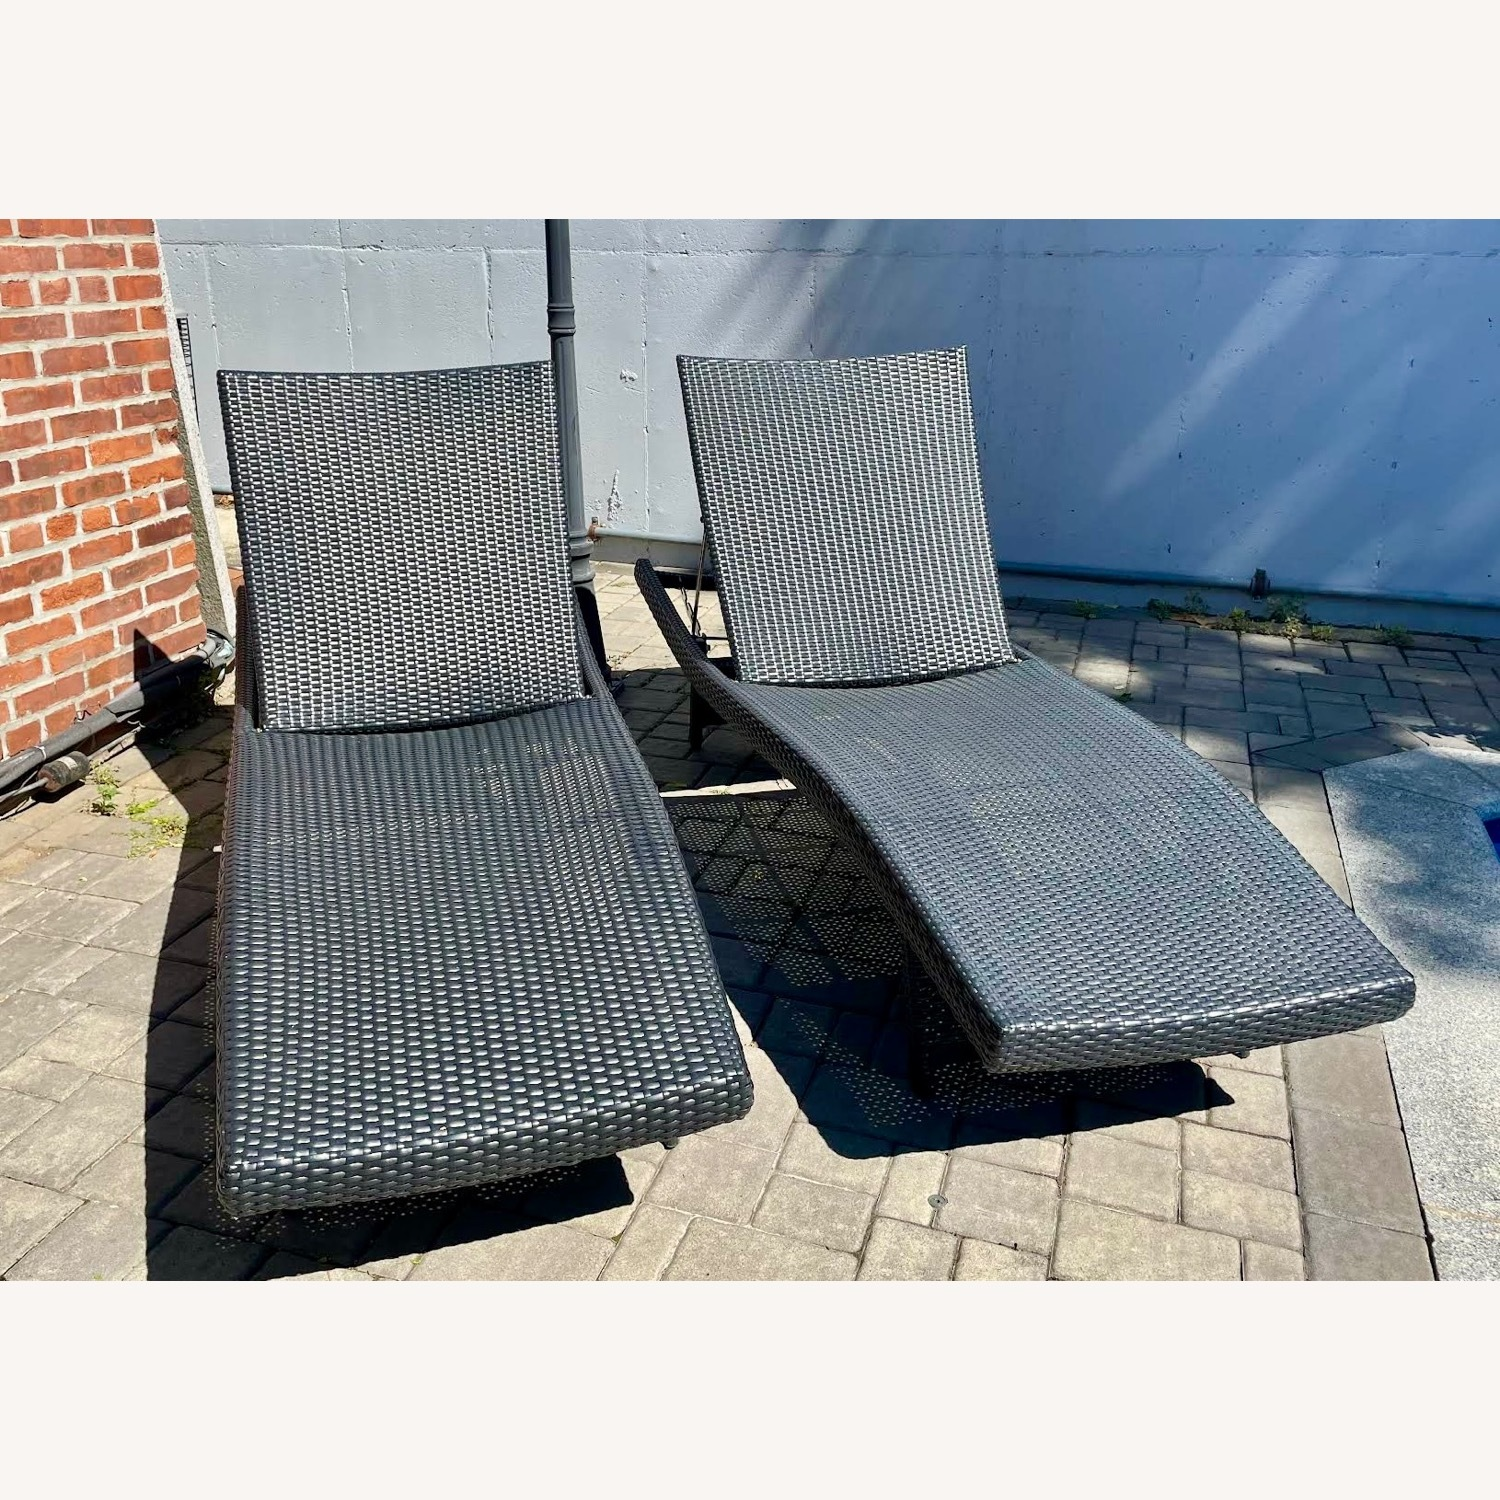 Original Balencia Black Chaise Lounges, Set of Two - image-2